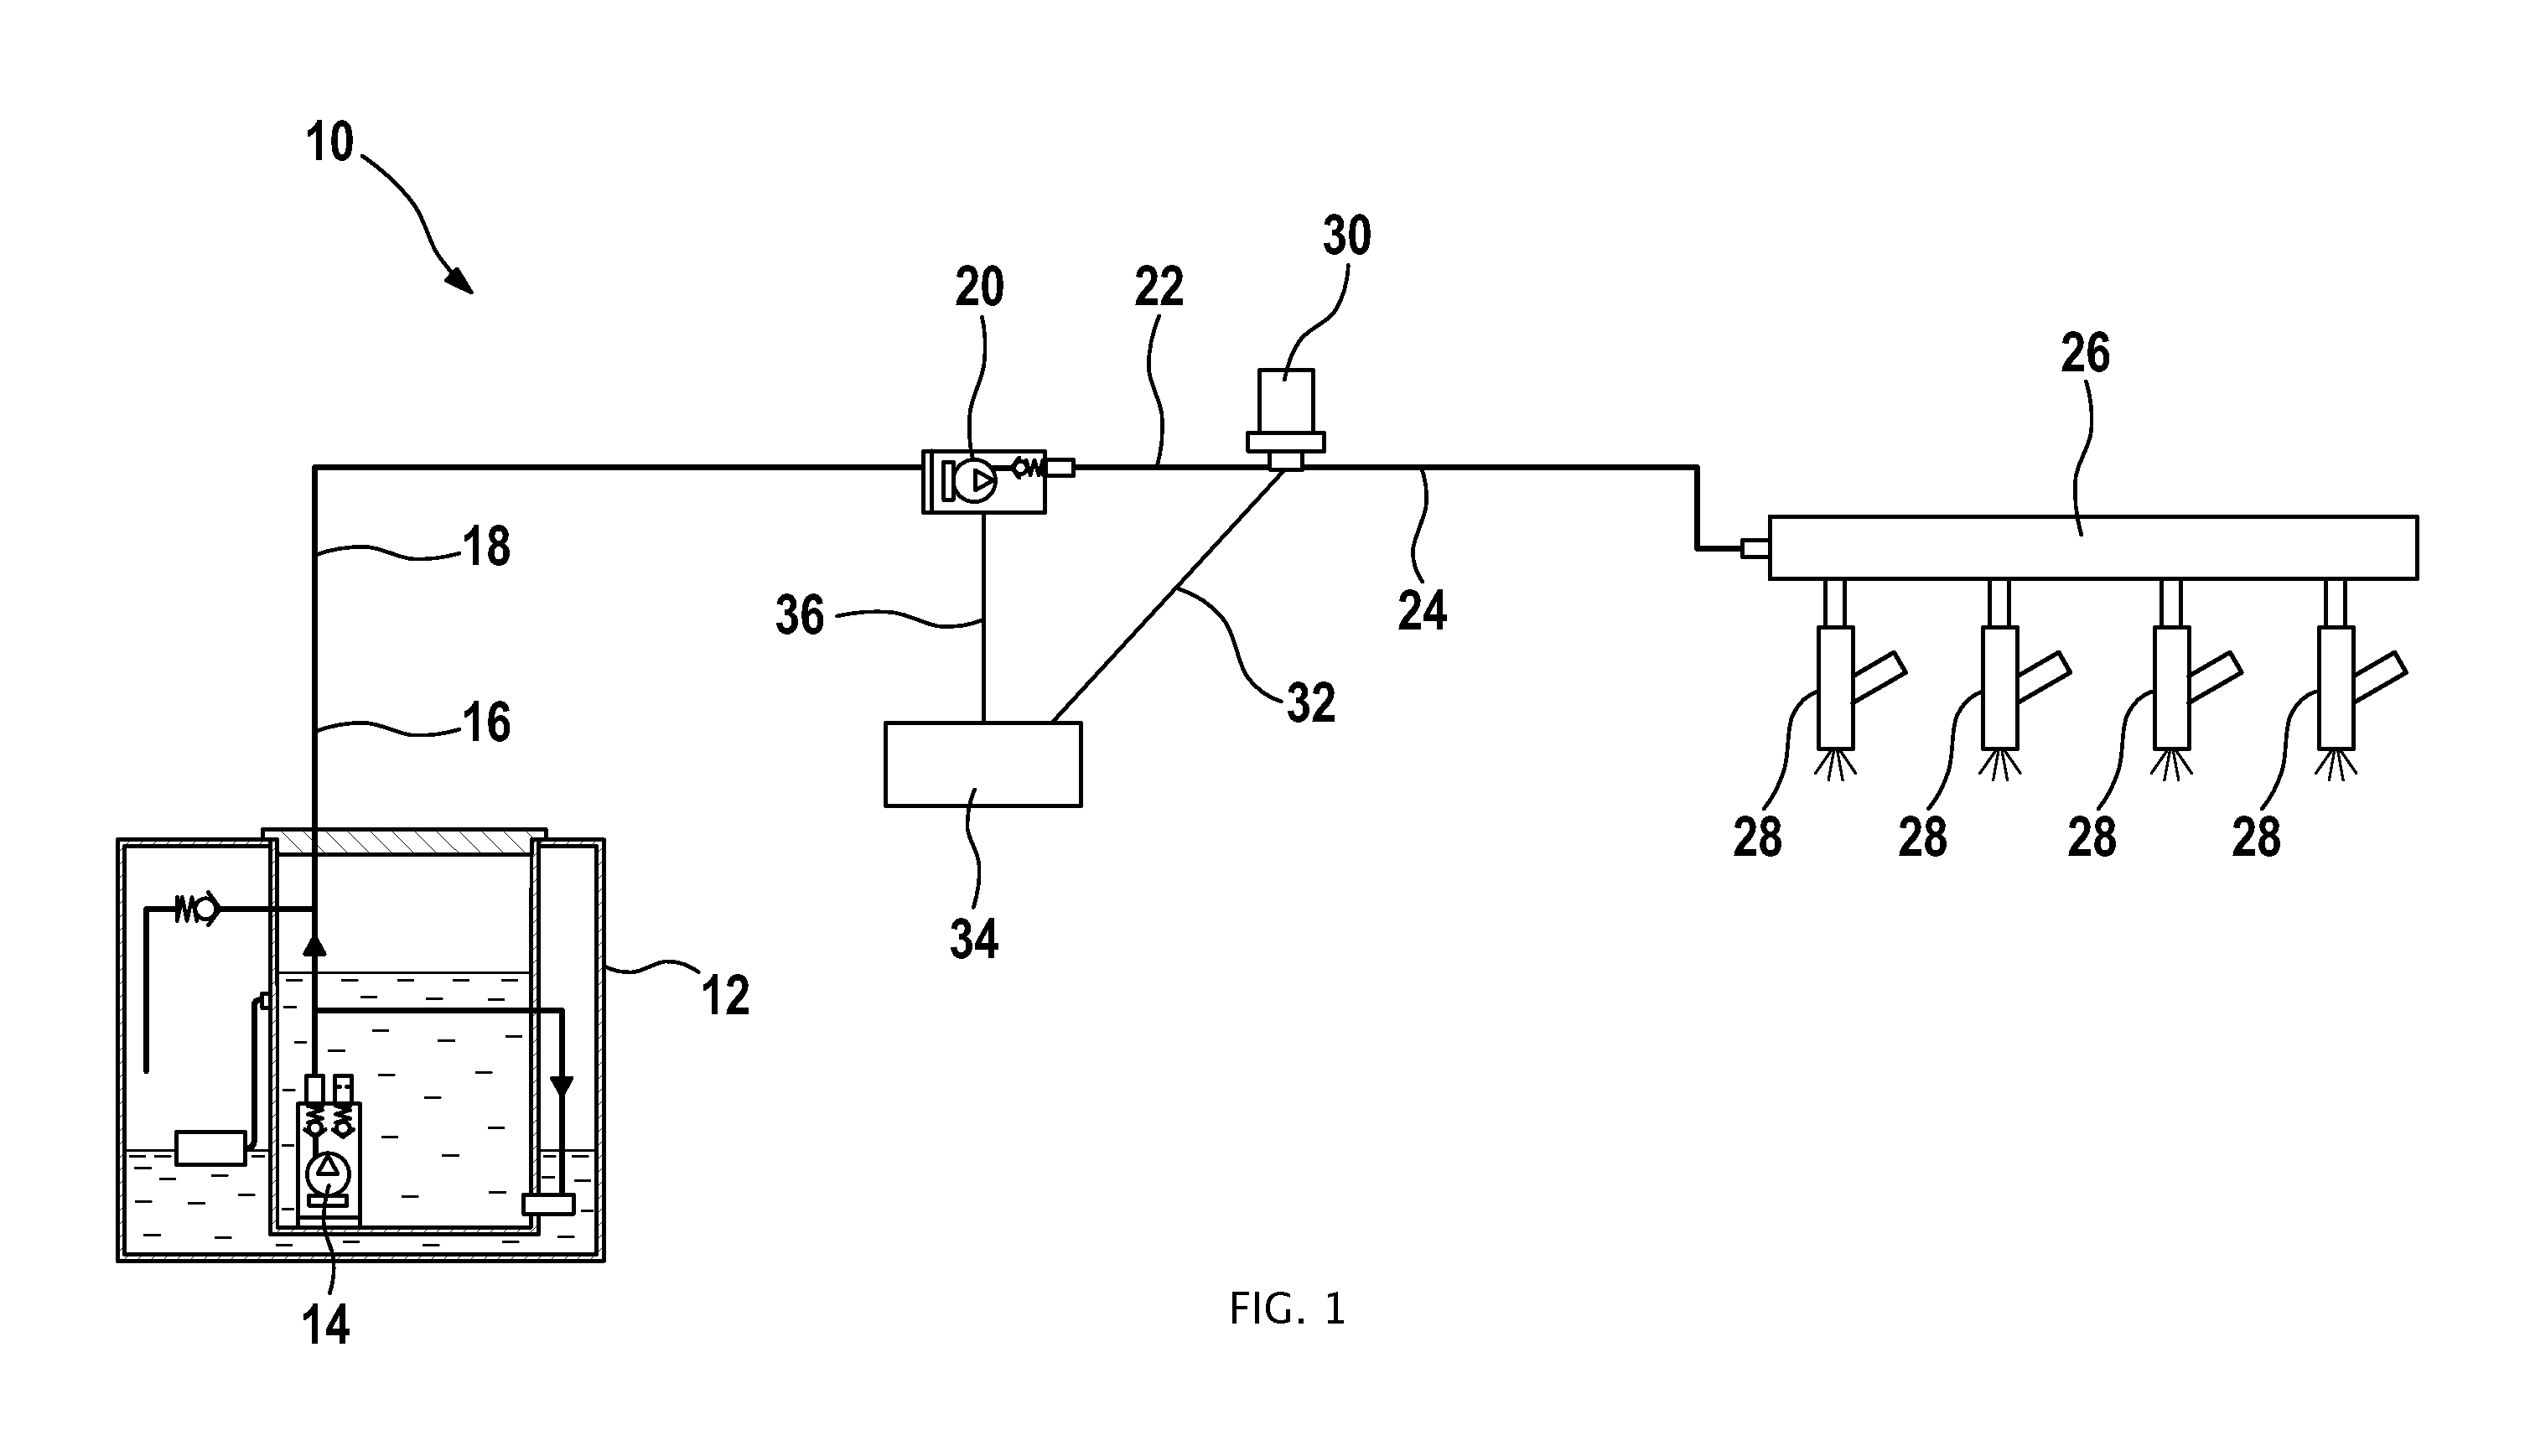 wo2012089364a1 fuel supply system of an internal combustion engine with direct fuel injection [ 3012 x 1737 Pixel ]